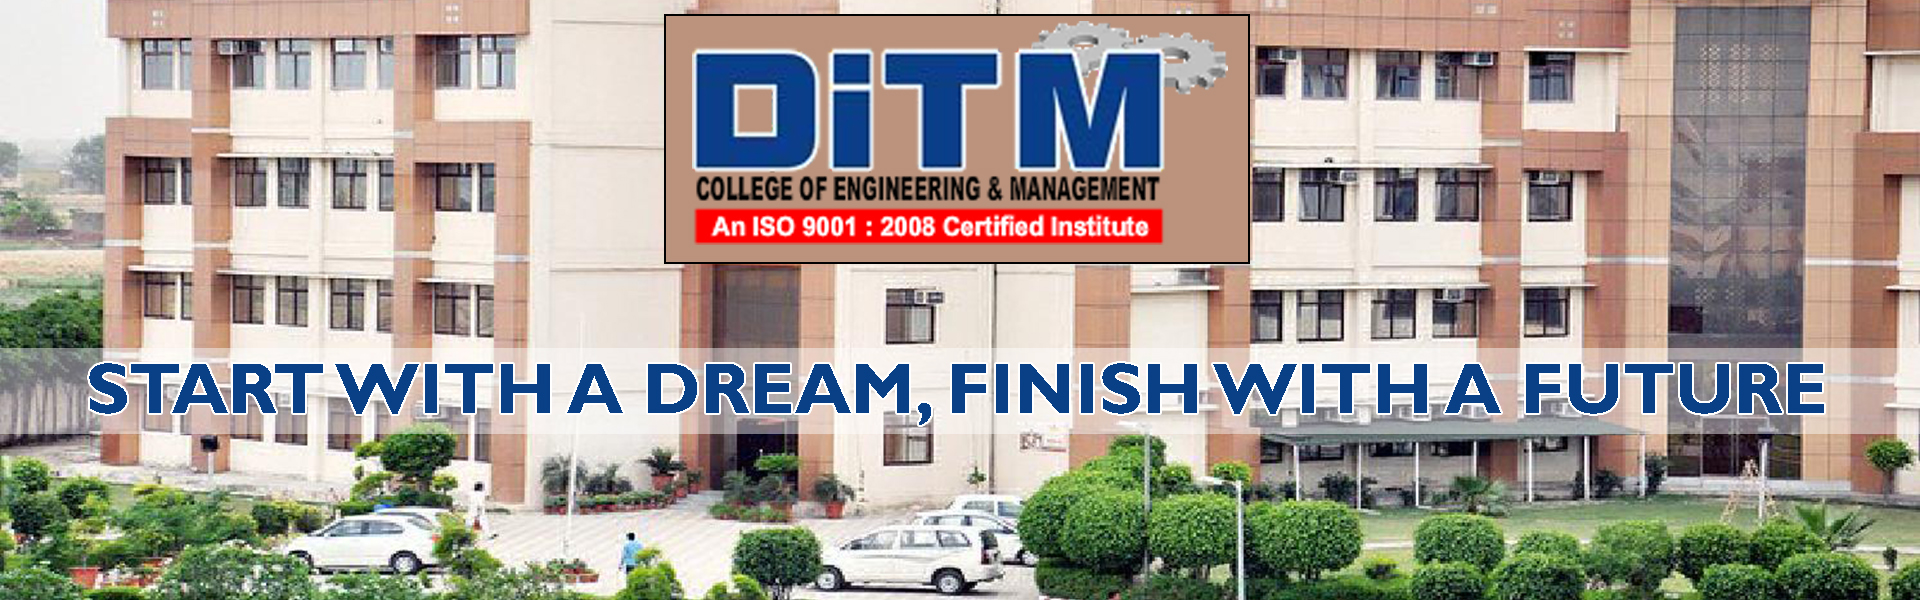 DITM College Building